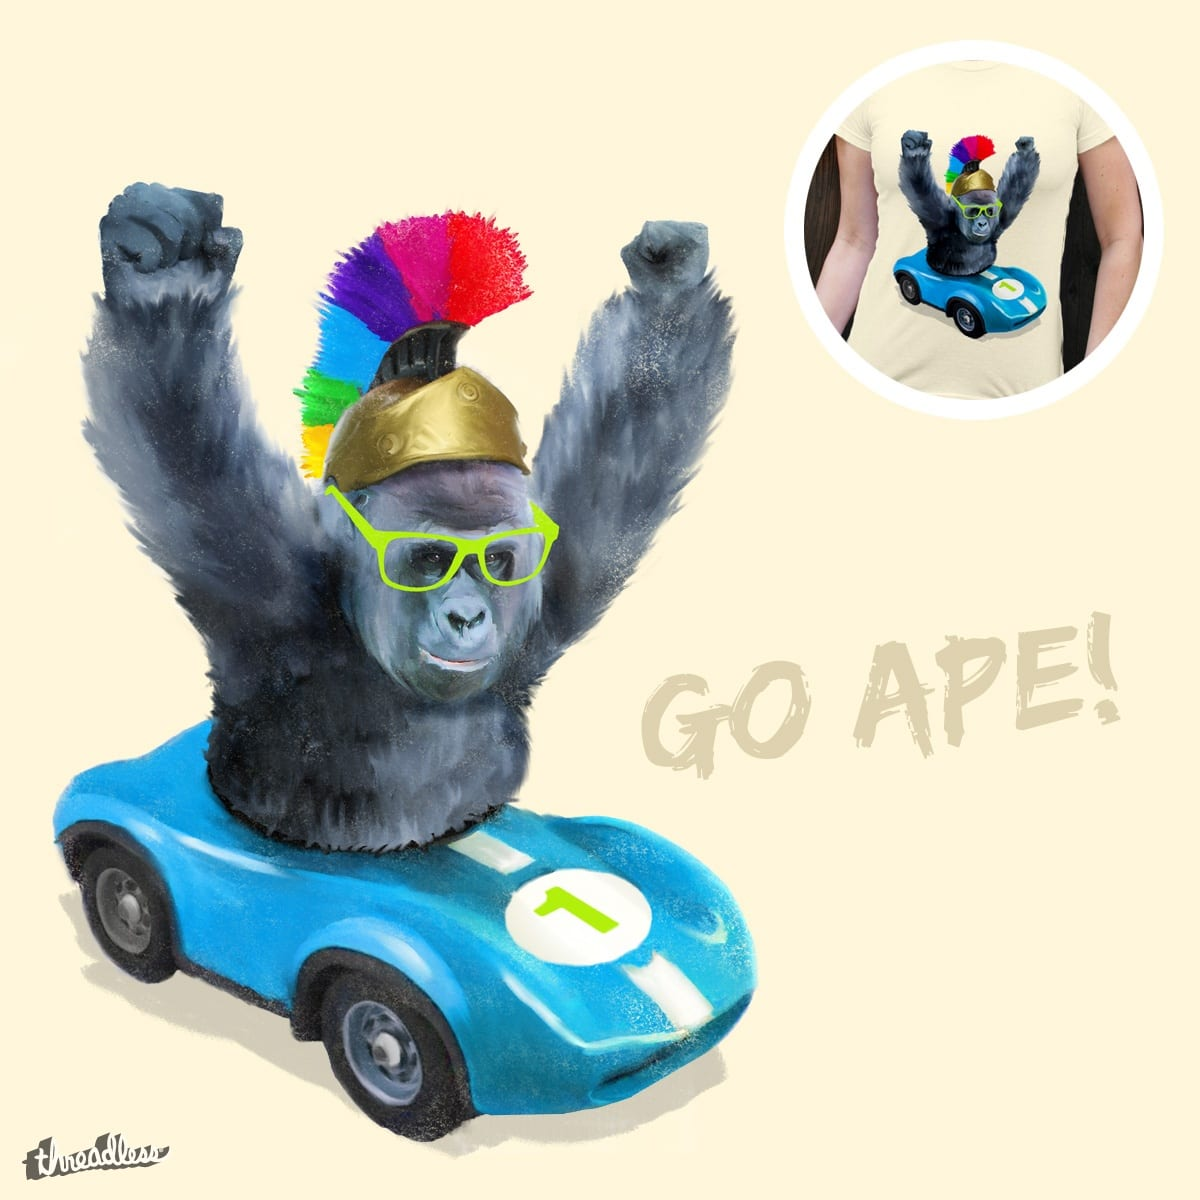 Go Ape! by levman on Threadless